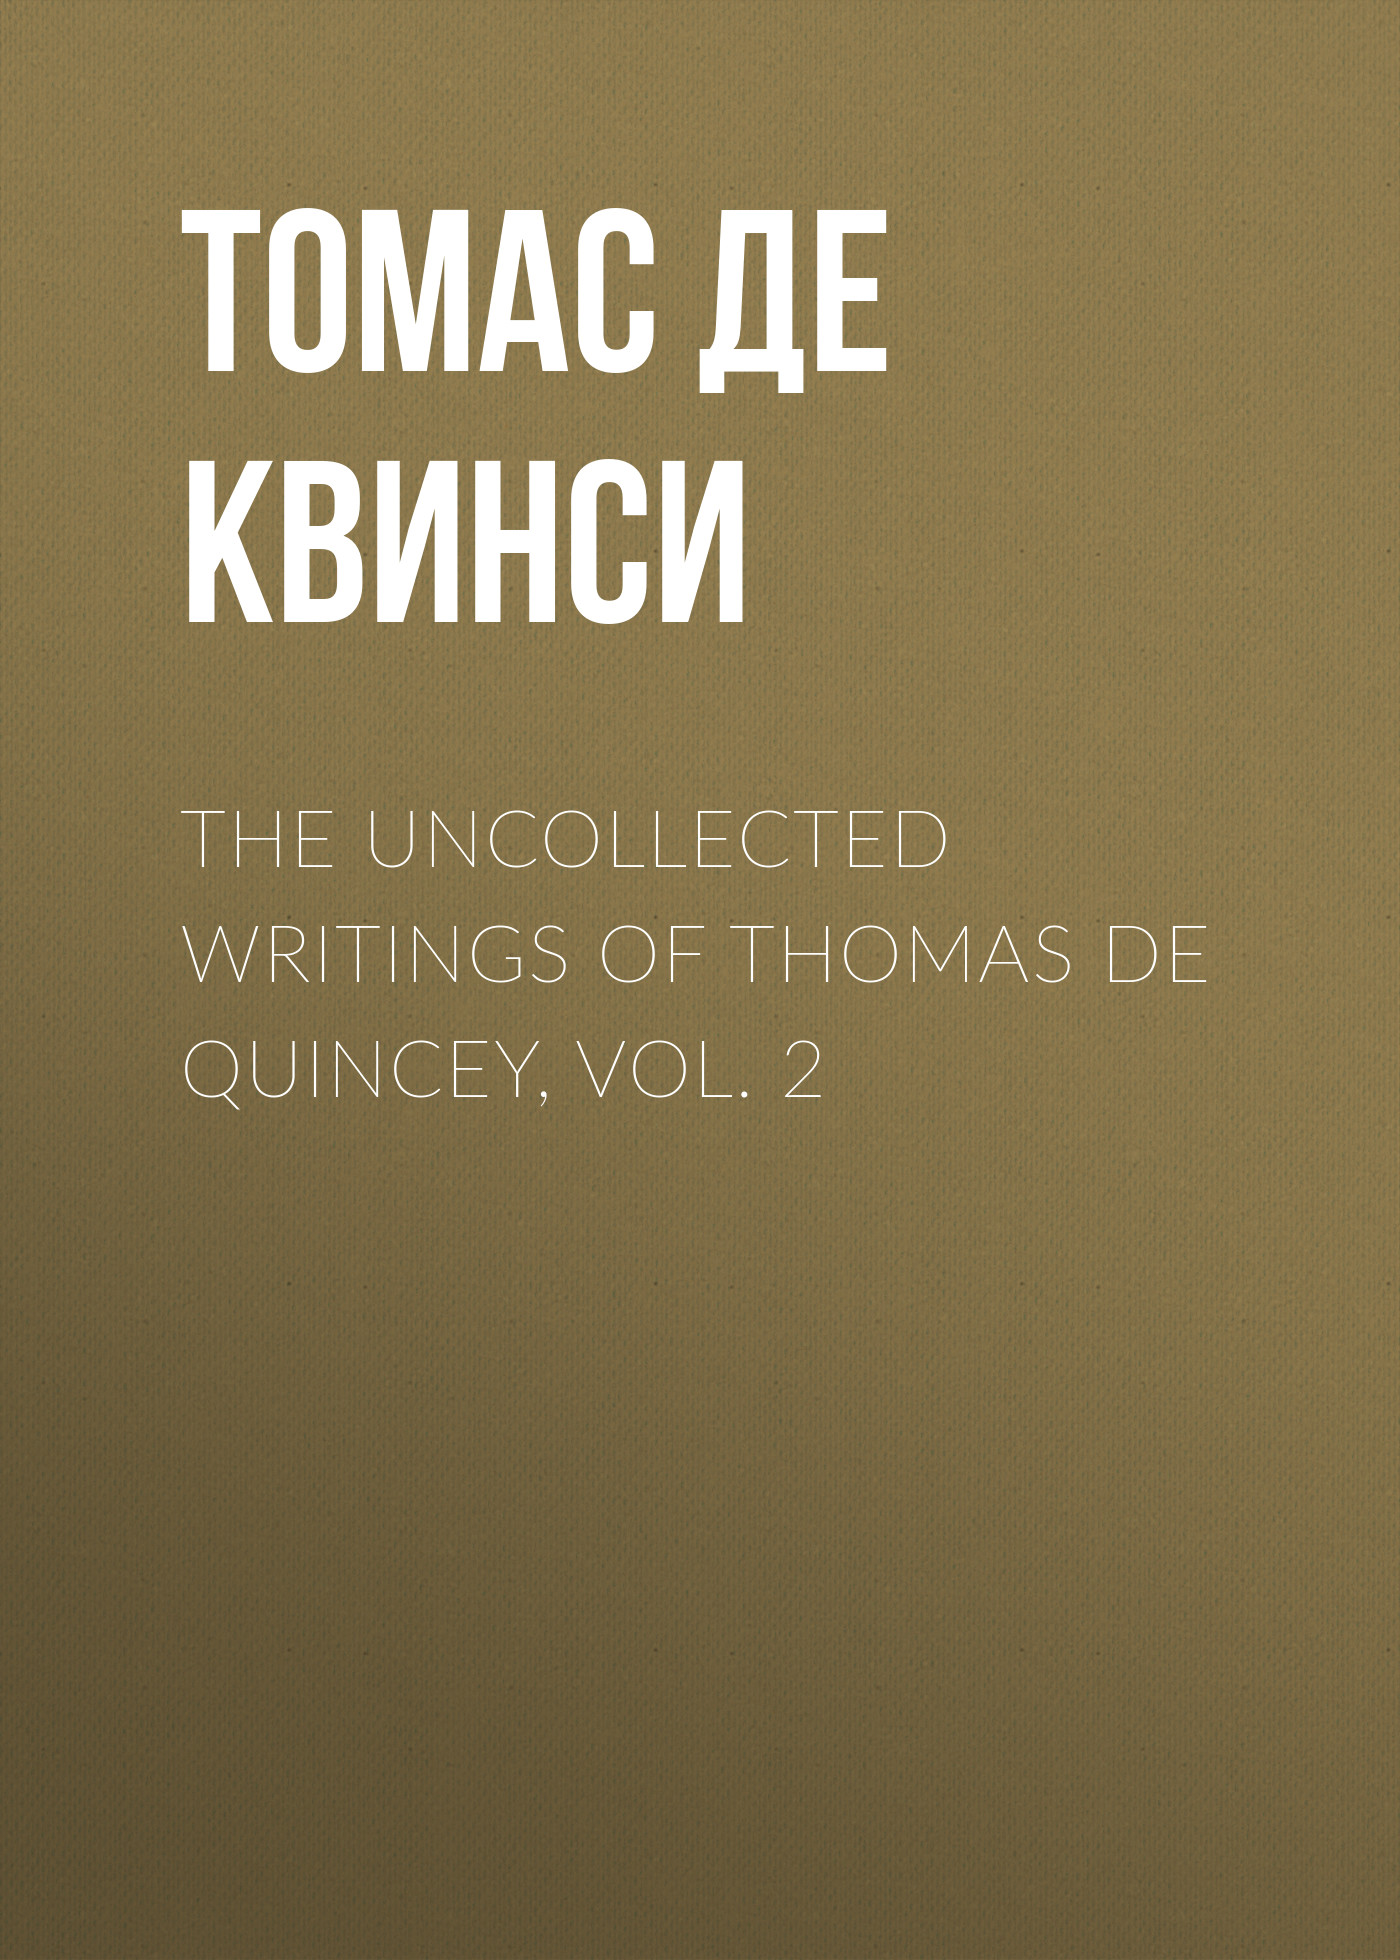 Томас де Квинси The Uncollected Writings of Thomas de Quincey, Vol. 2 томас де квинси the uncollected writings of thomas de quincey vol 1